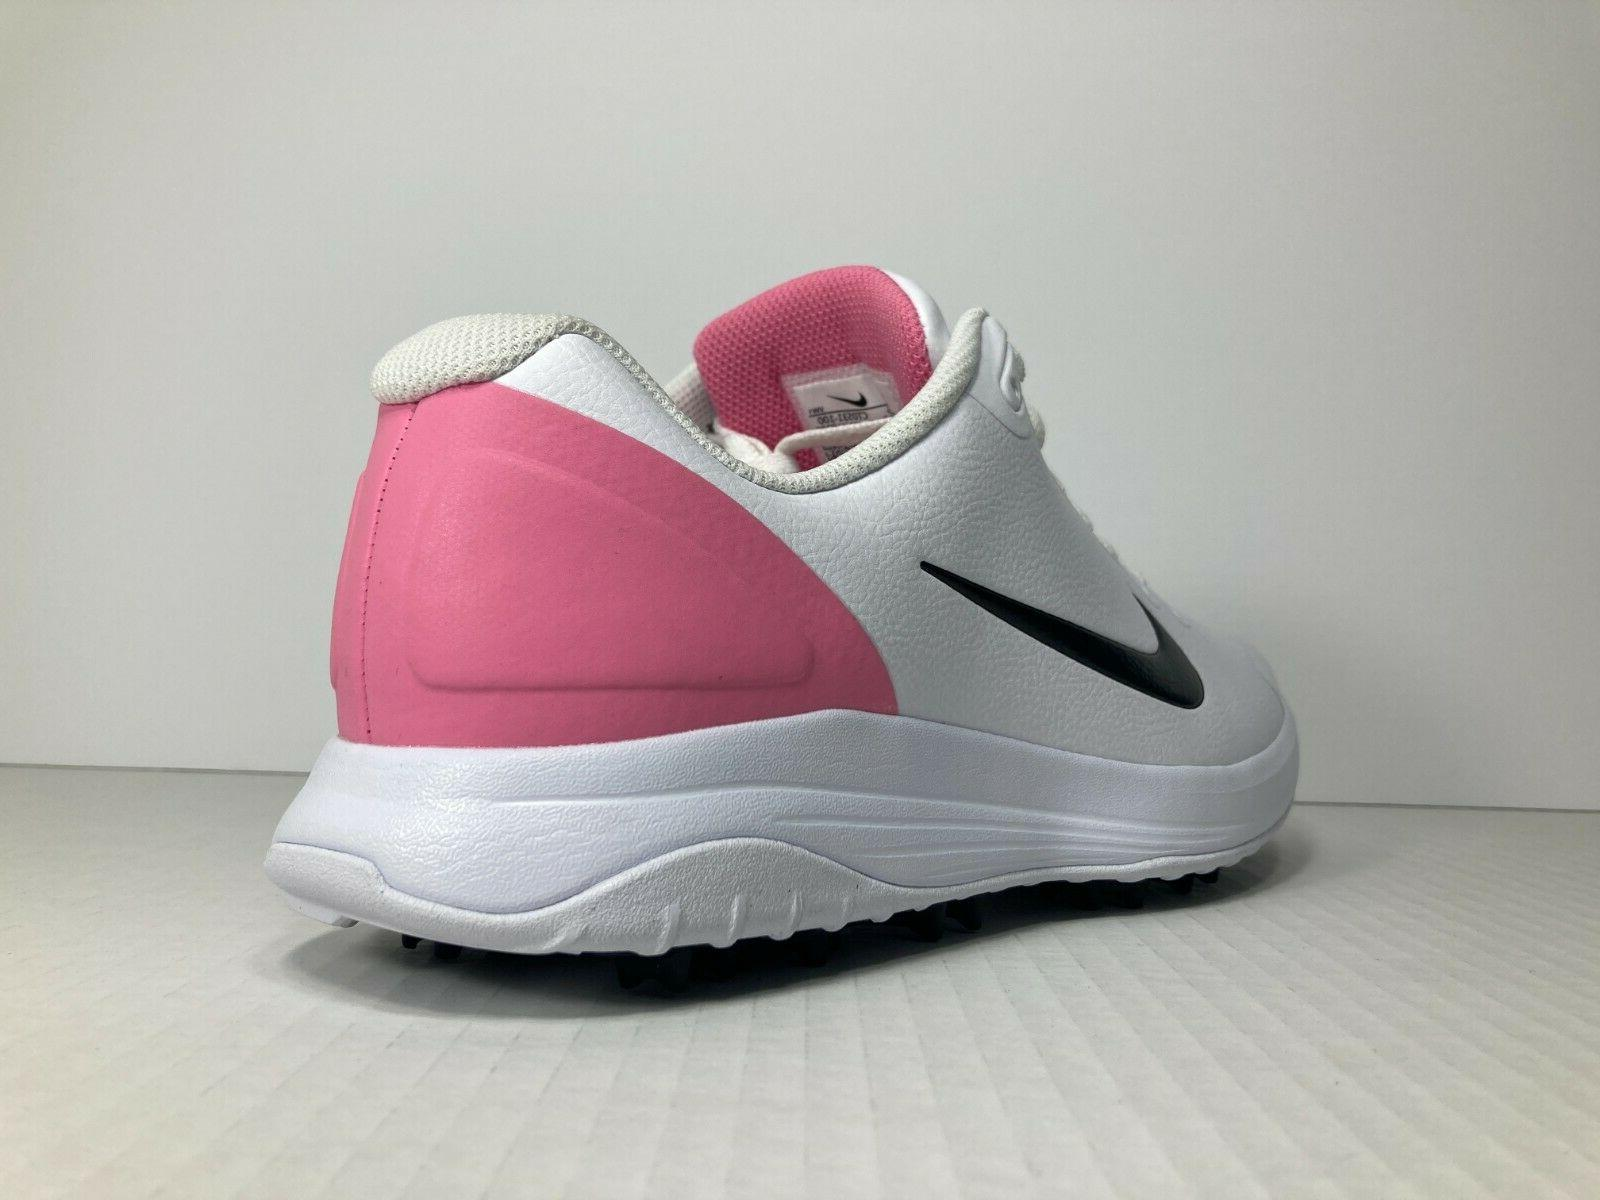 NIKE GOLF INFINITY Mens Golfing Shoes Spikes White Pink -